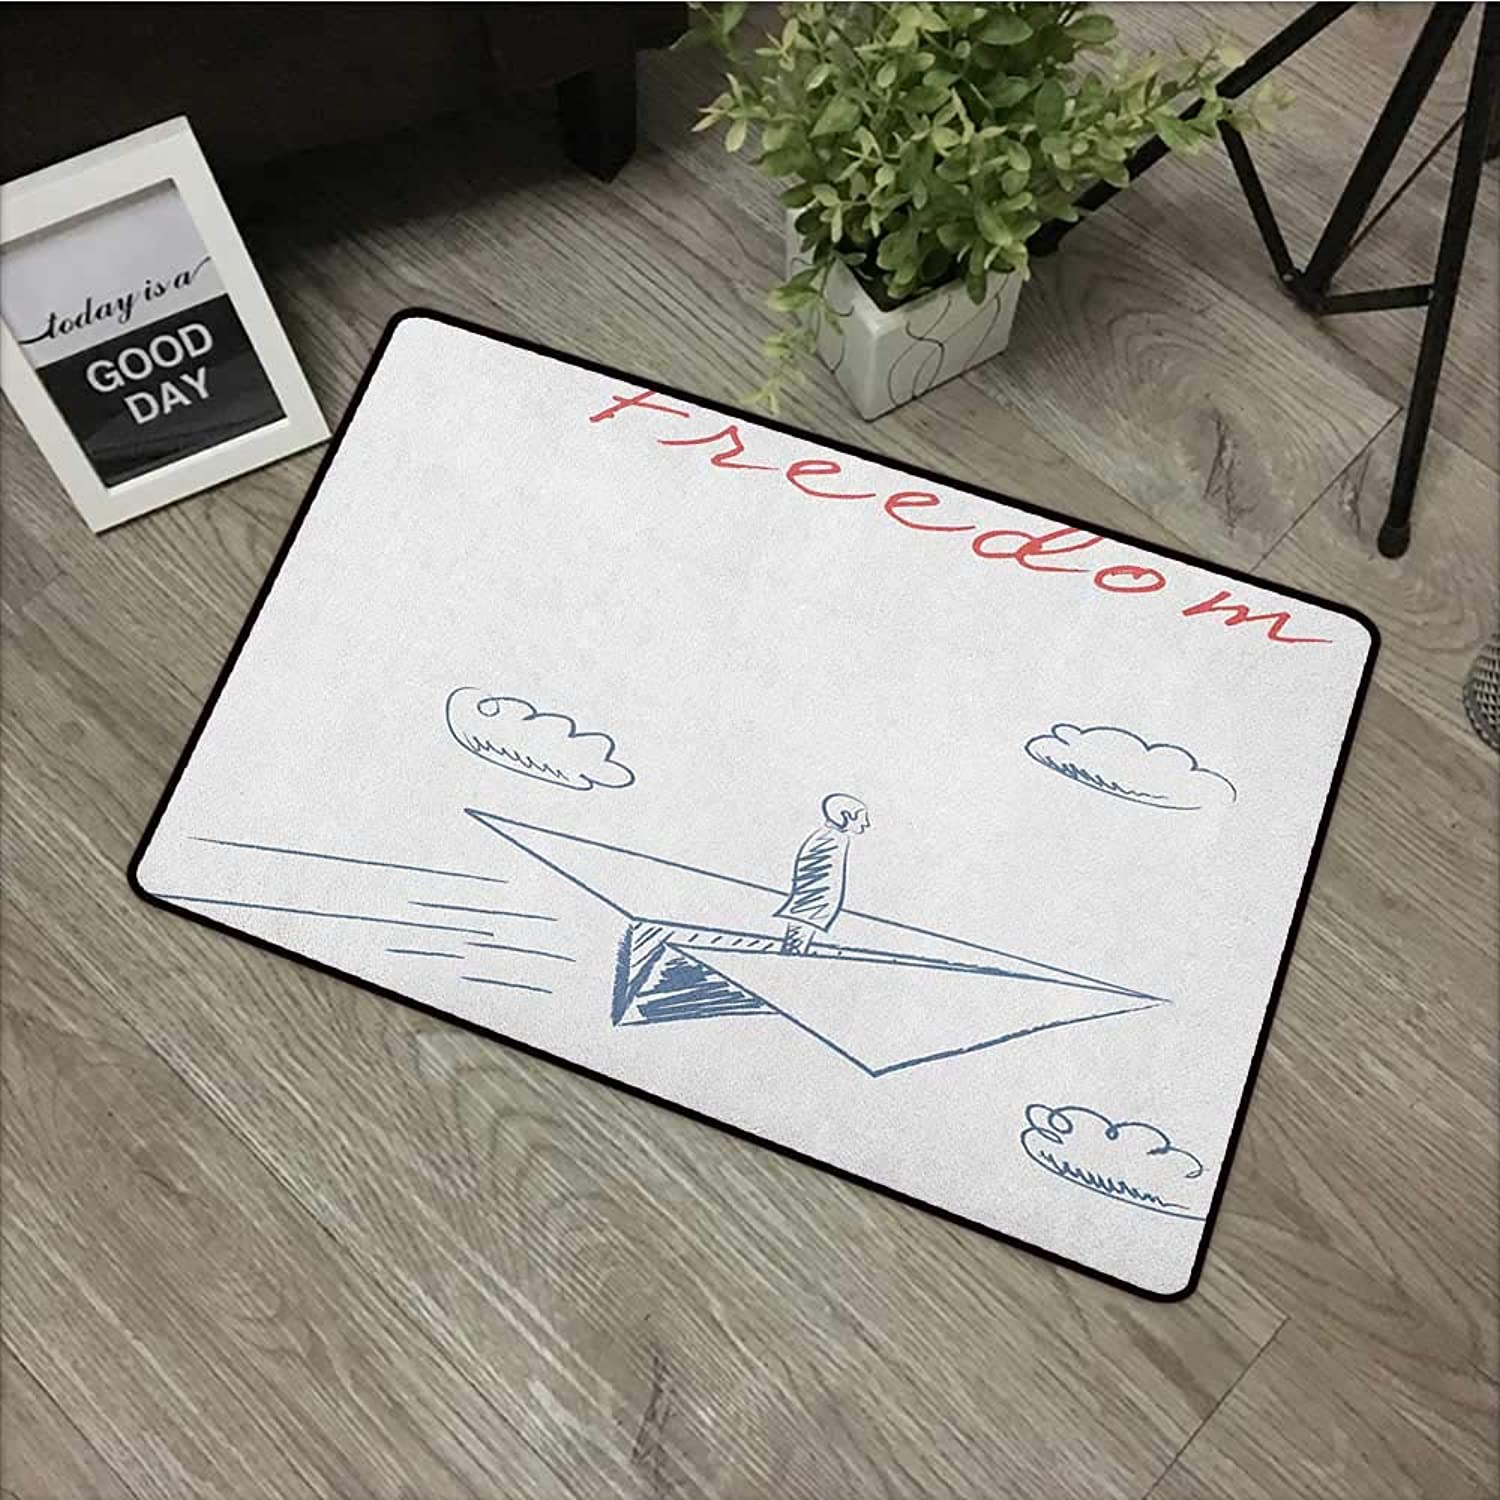 Clear Printed Pattern Door mat W35 x L59 INCH Adventure,Flying Paper Plane in Hand Drawn Sketch Cartoon Style Freedom Text Clouds, blueegrey Red White Non-Slip, with Non-Slip Backing,Non-Slip Door Mat